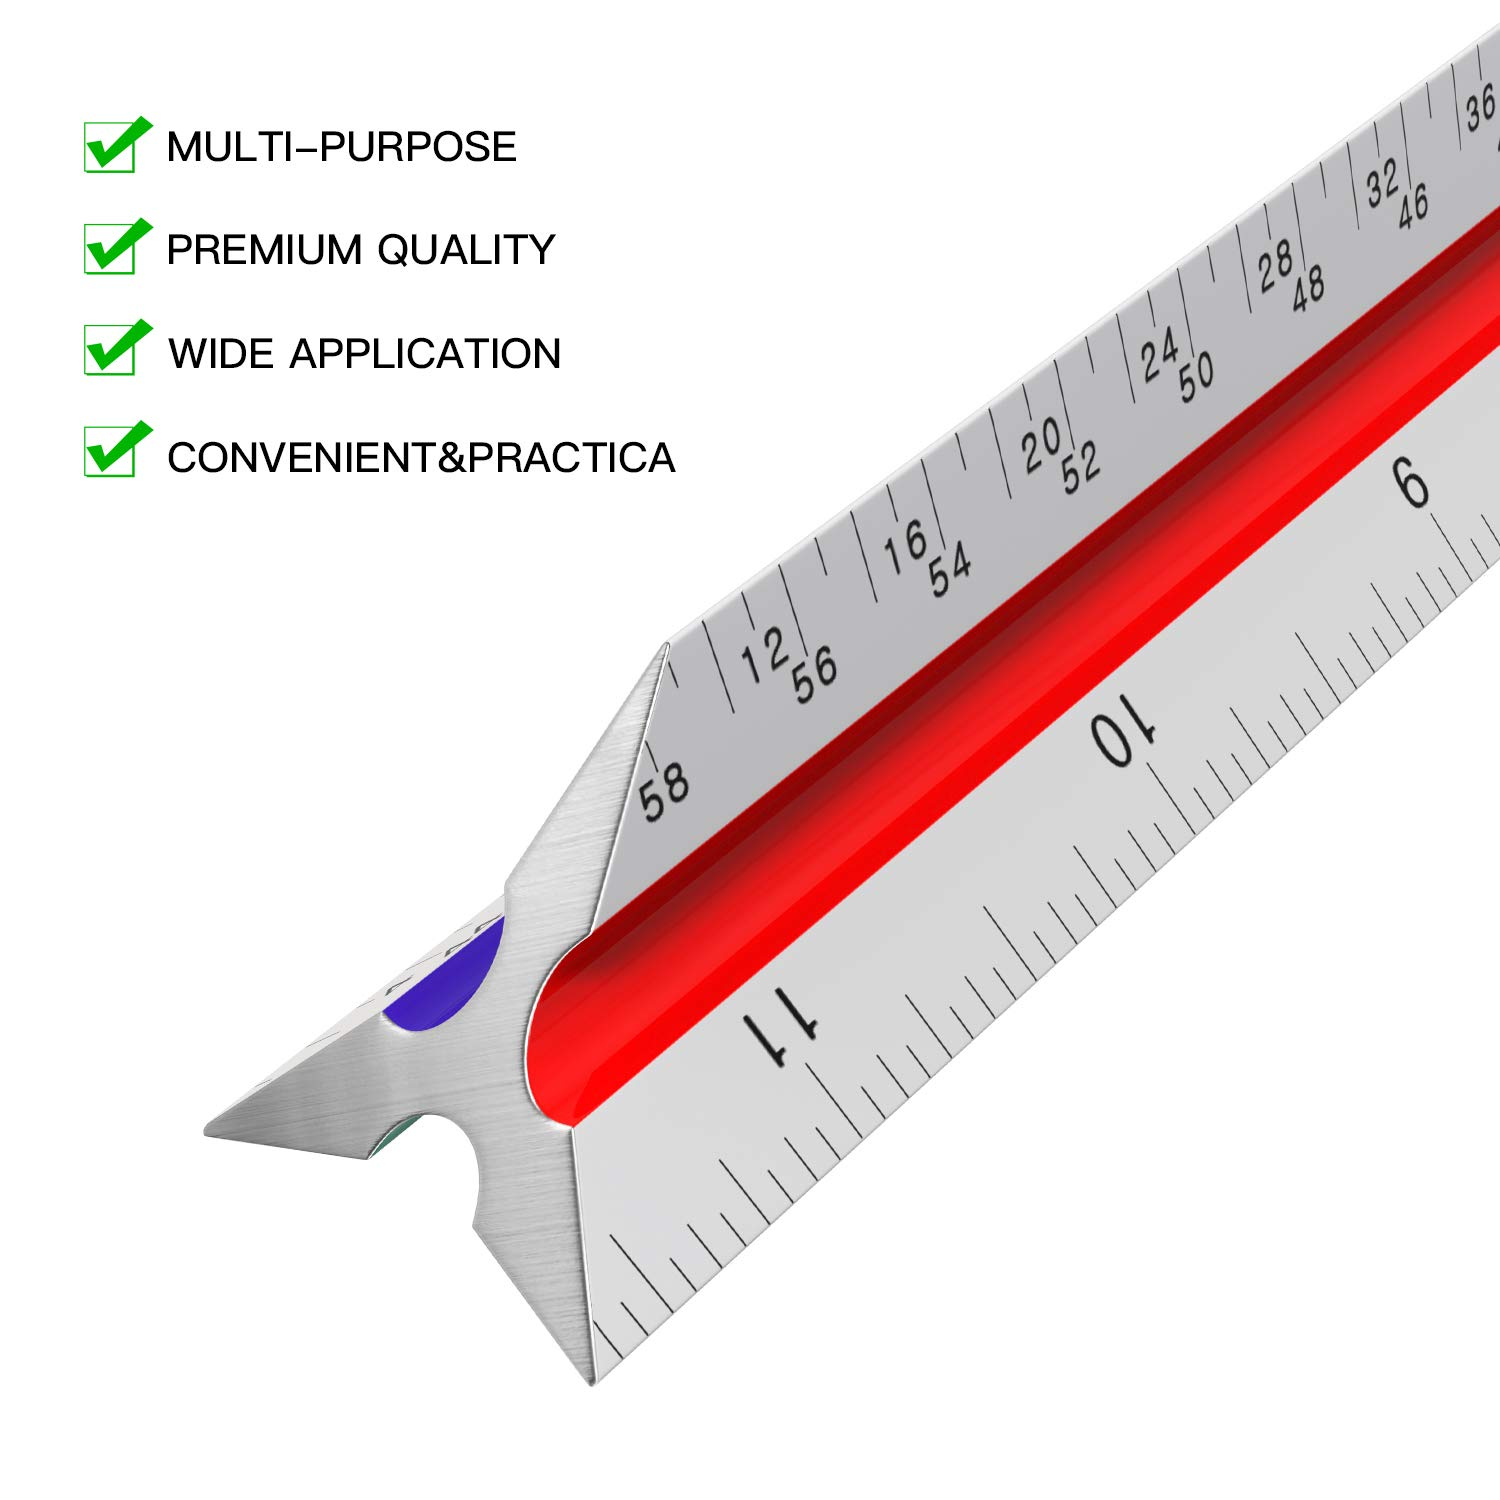 Architectural Scale Ruler - 12'' Aluminum Triangular Architect Scale Ruler for Engineering Scale, Drafting Ruler, Metal Scale Ruler, Blueprint - with Imperial Measurements by Leyaron (Image #4)